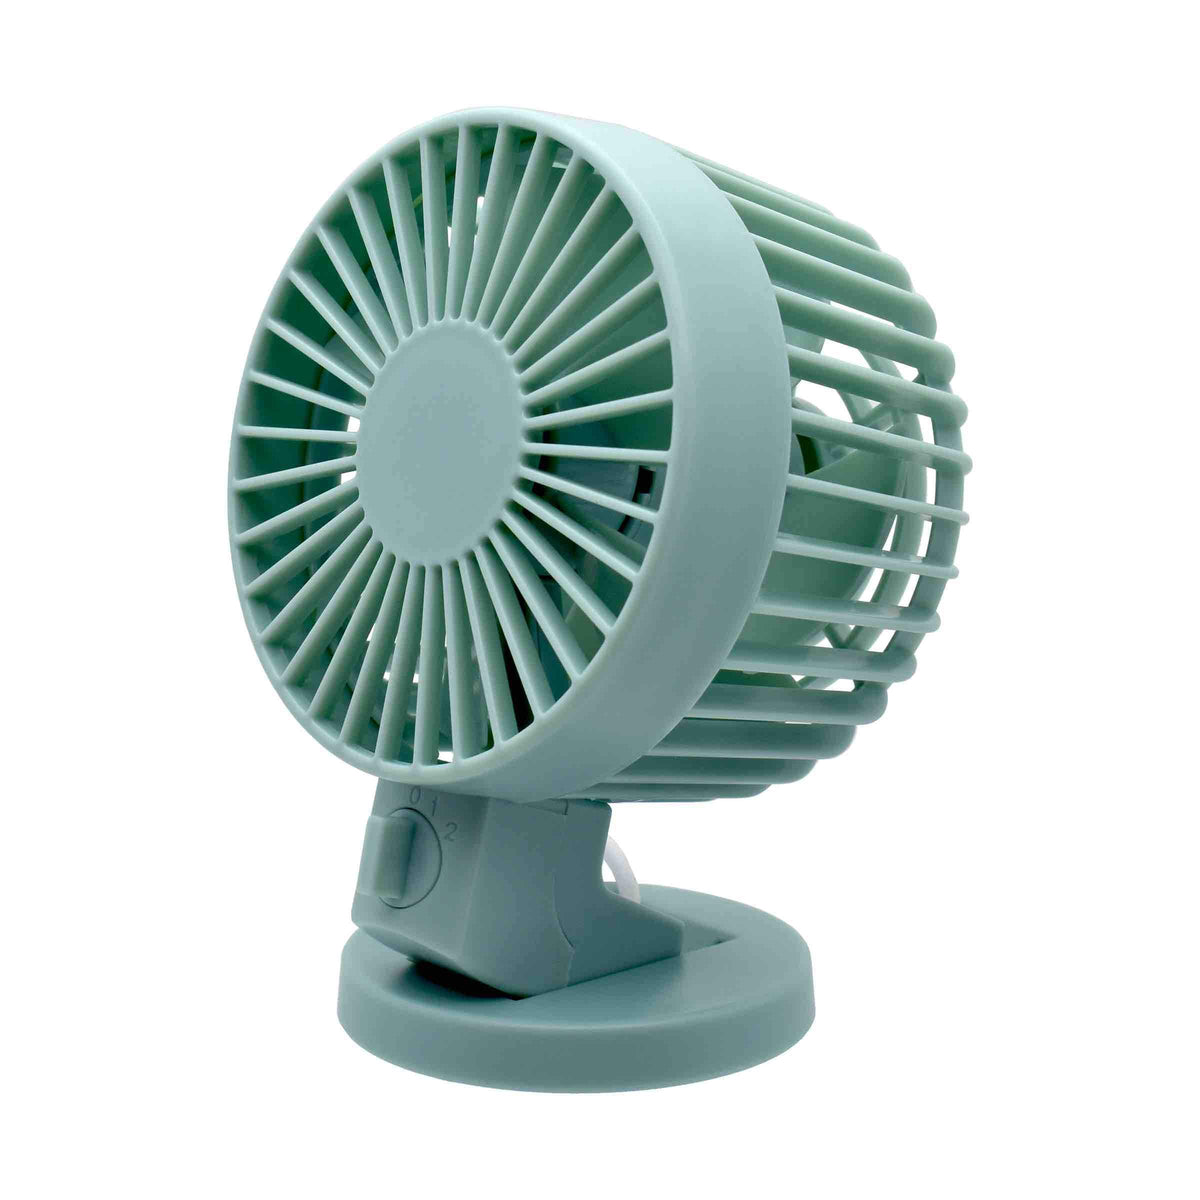 USB Turbo Multispeed Desk Fan